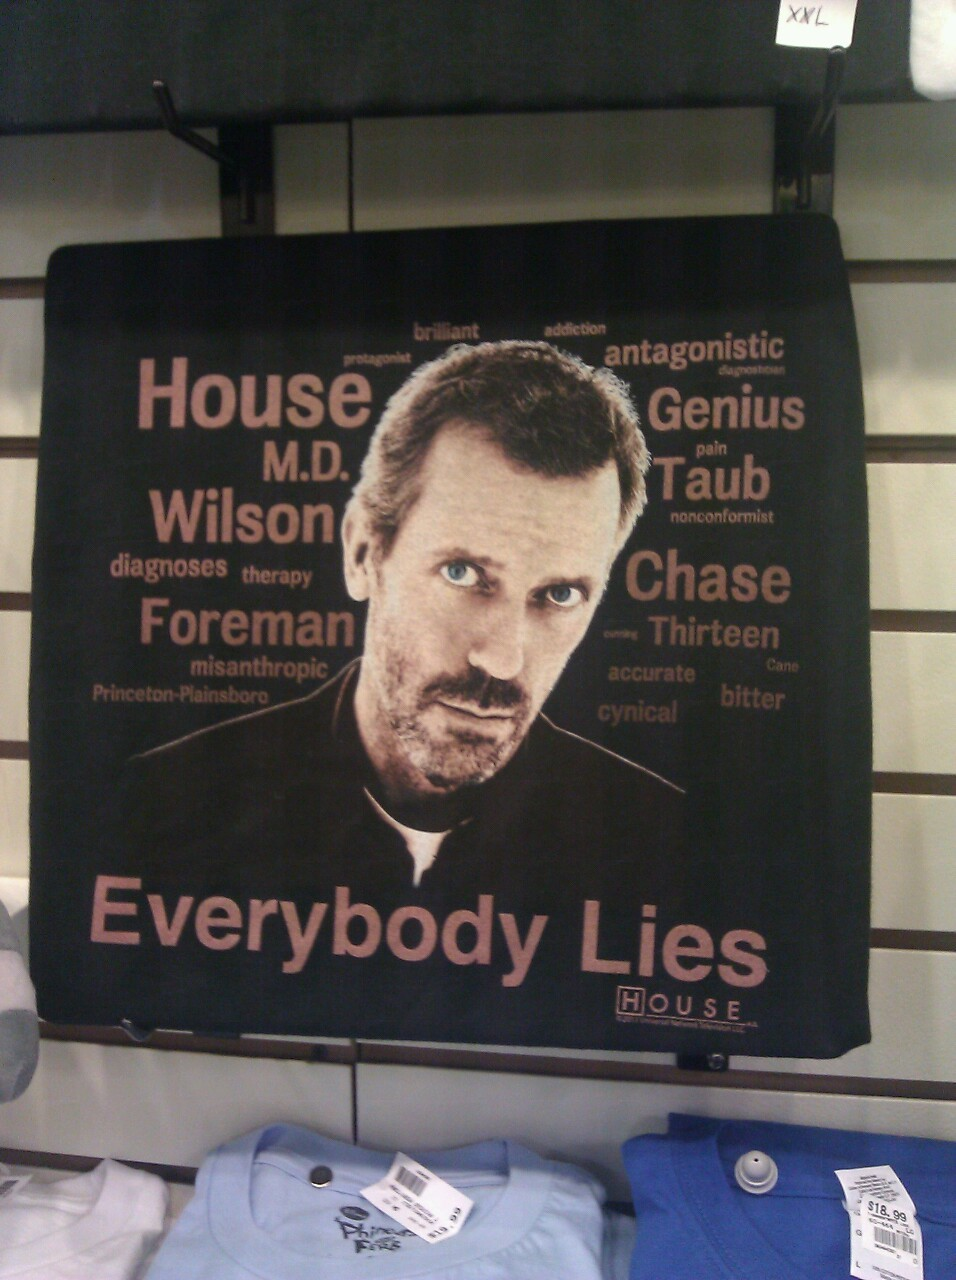 Dr. House is in the house!! An awesome shirt sold at Hot Rags. Sooo want!